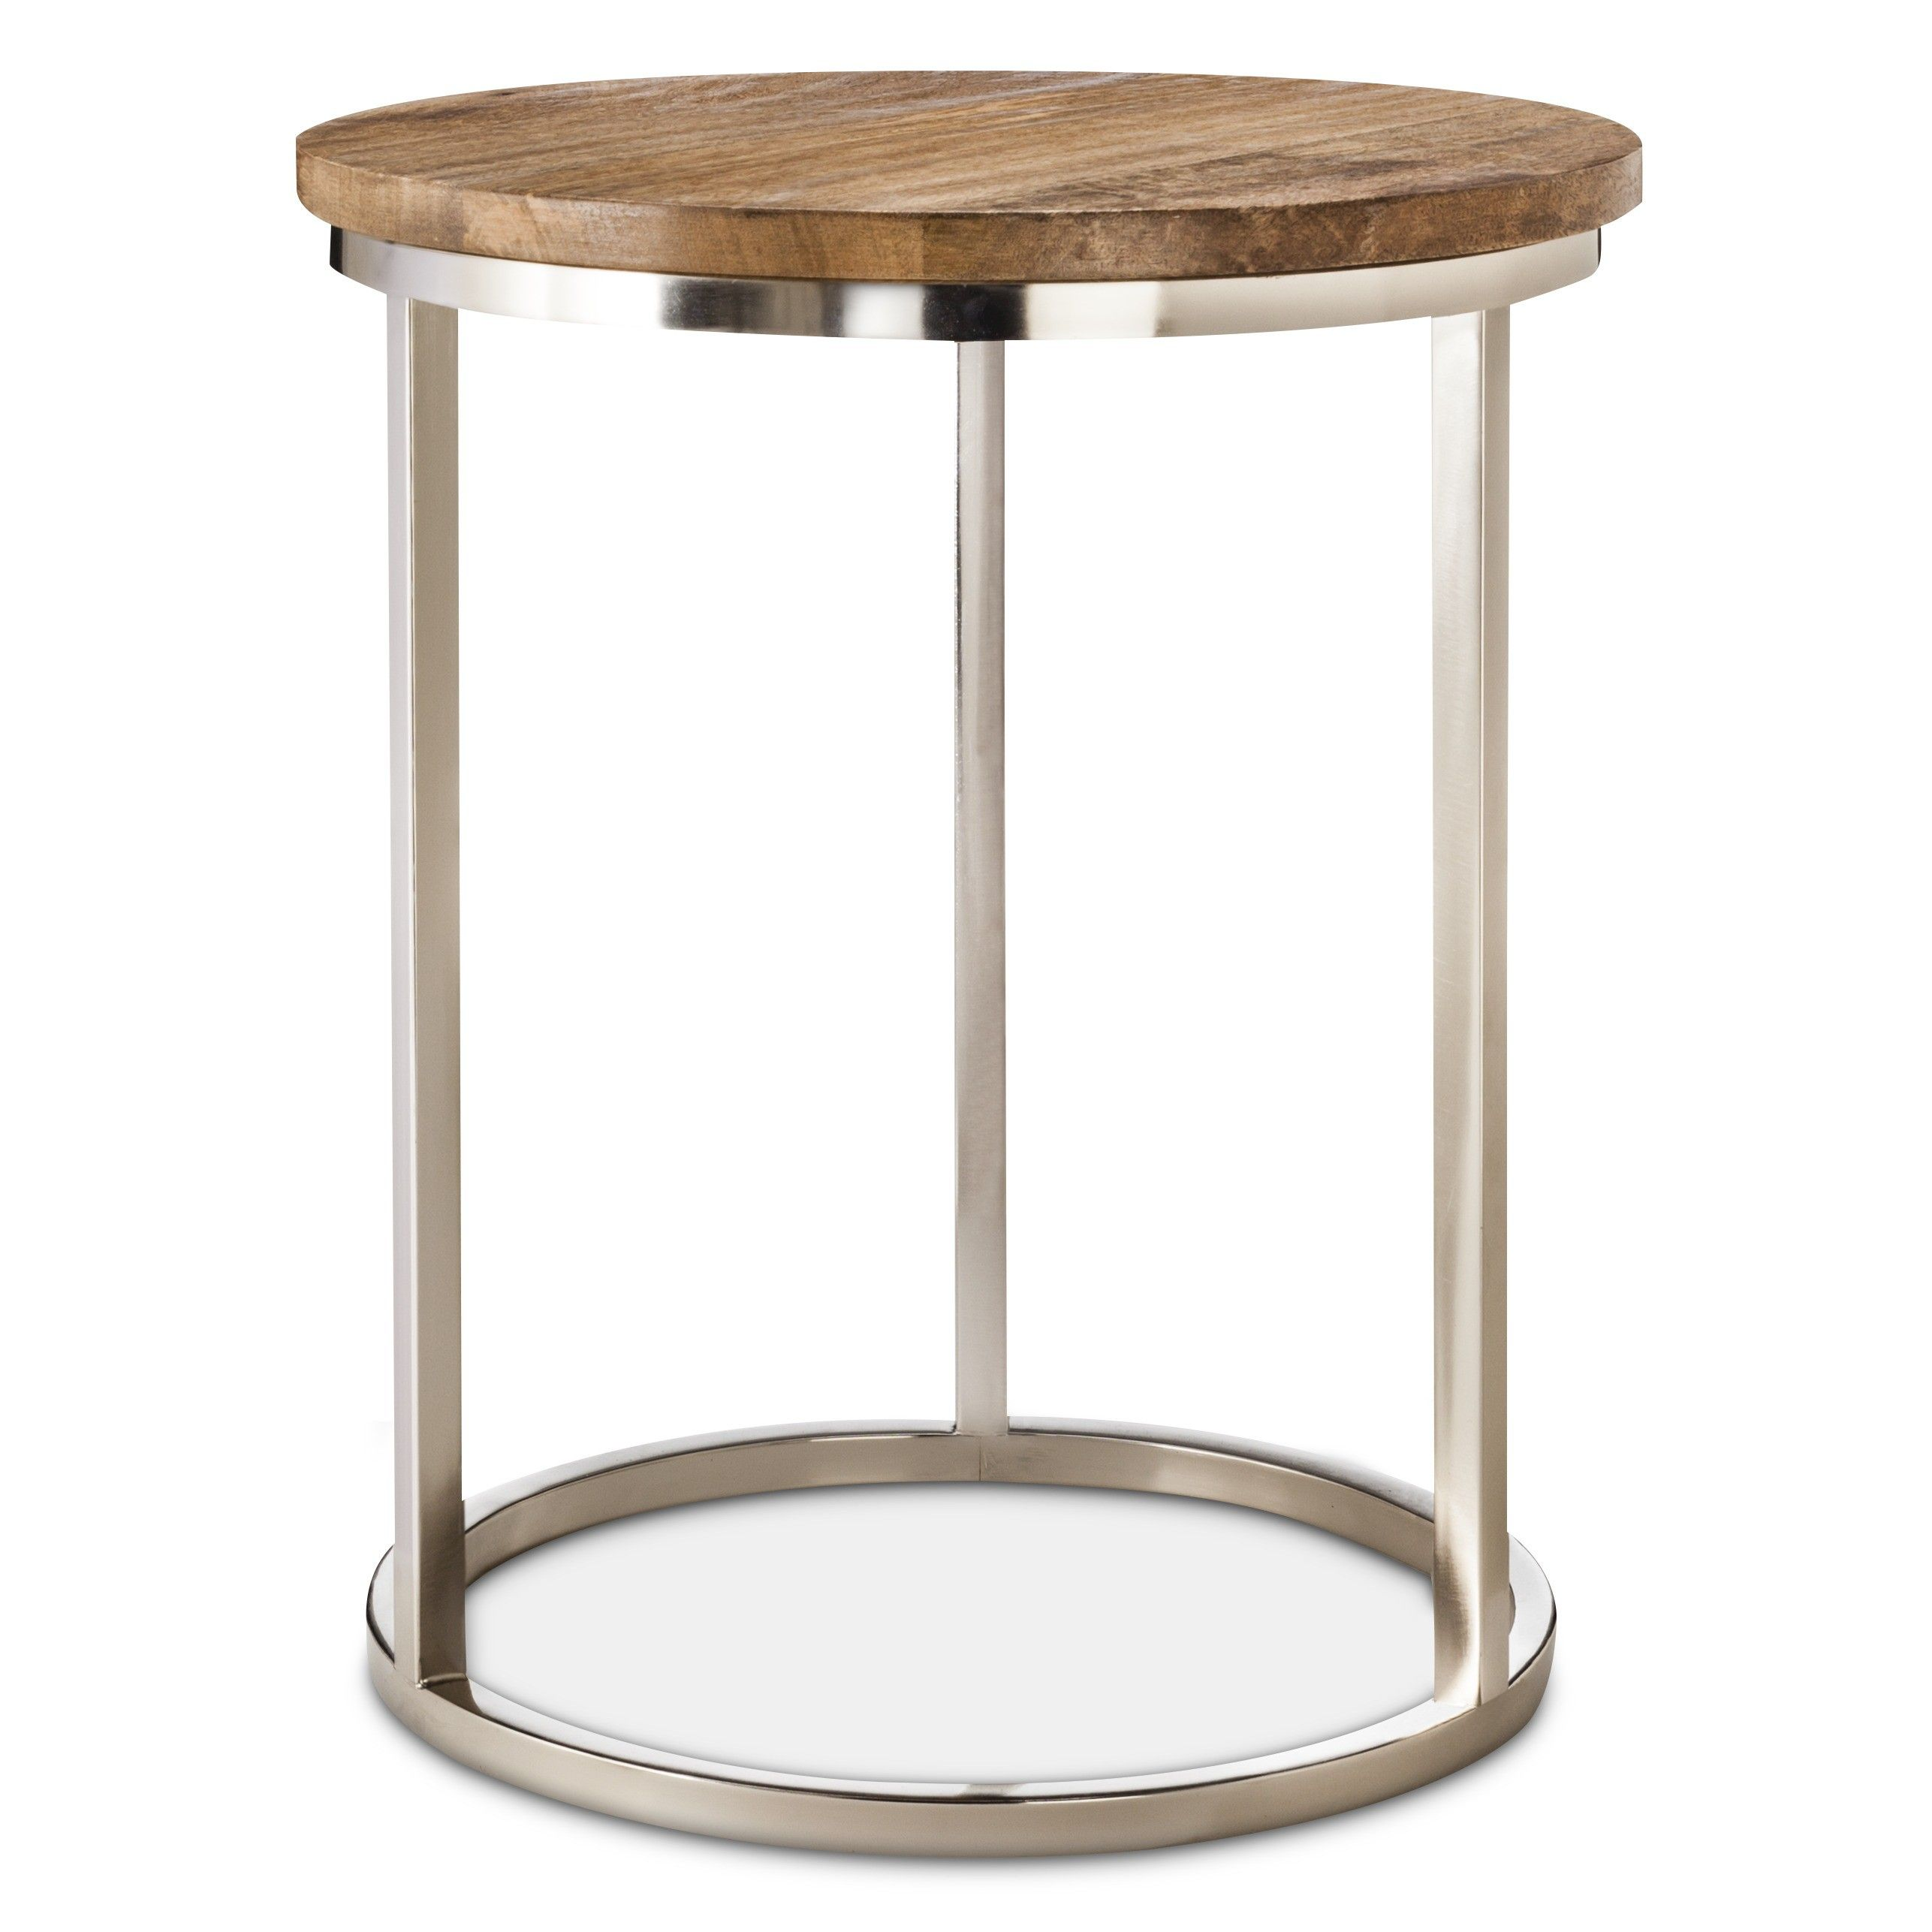 side table for glider threshold metal accent with wood top target frog rain drum antique coffee glass ashley furniture upholstered diy end ideas pink runner narrow storage small